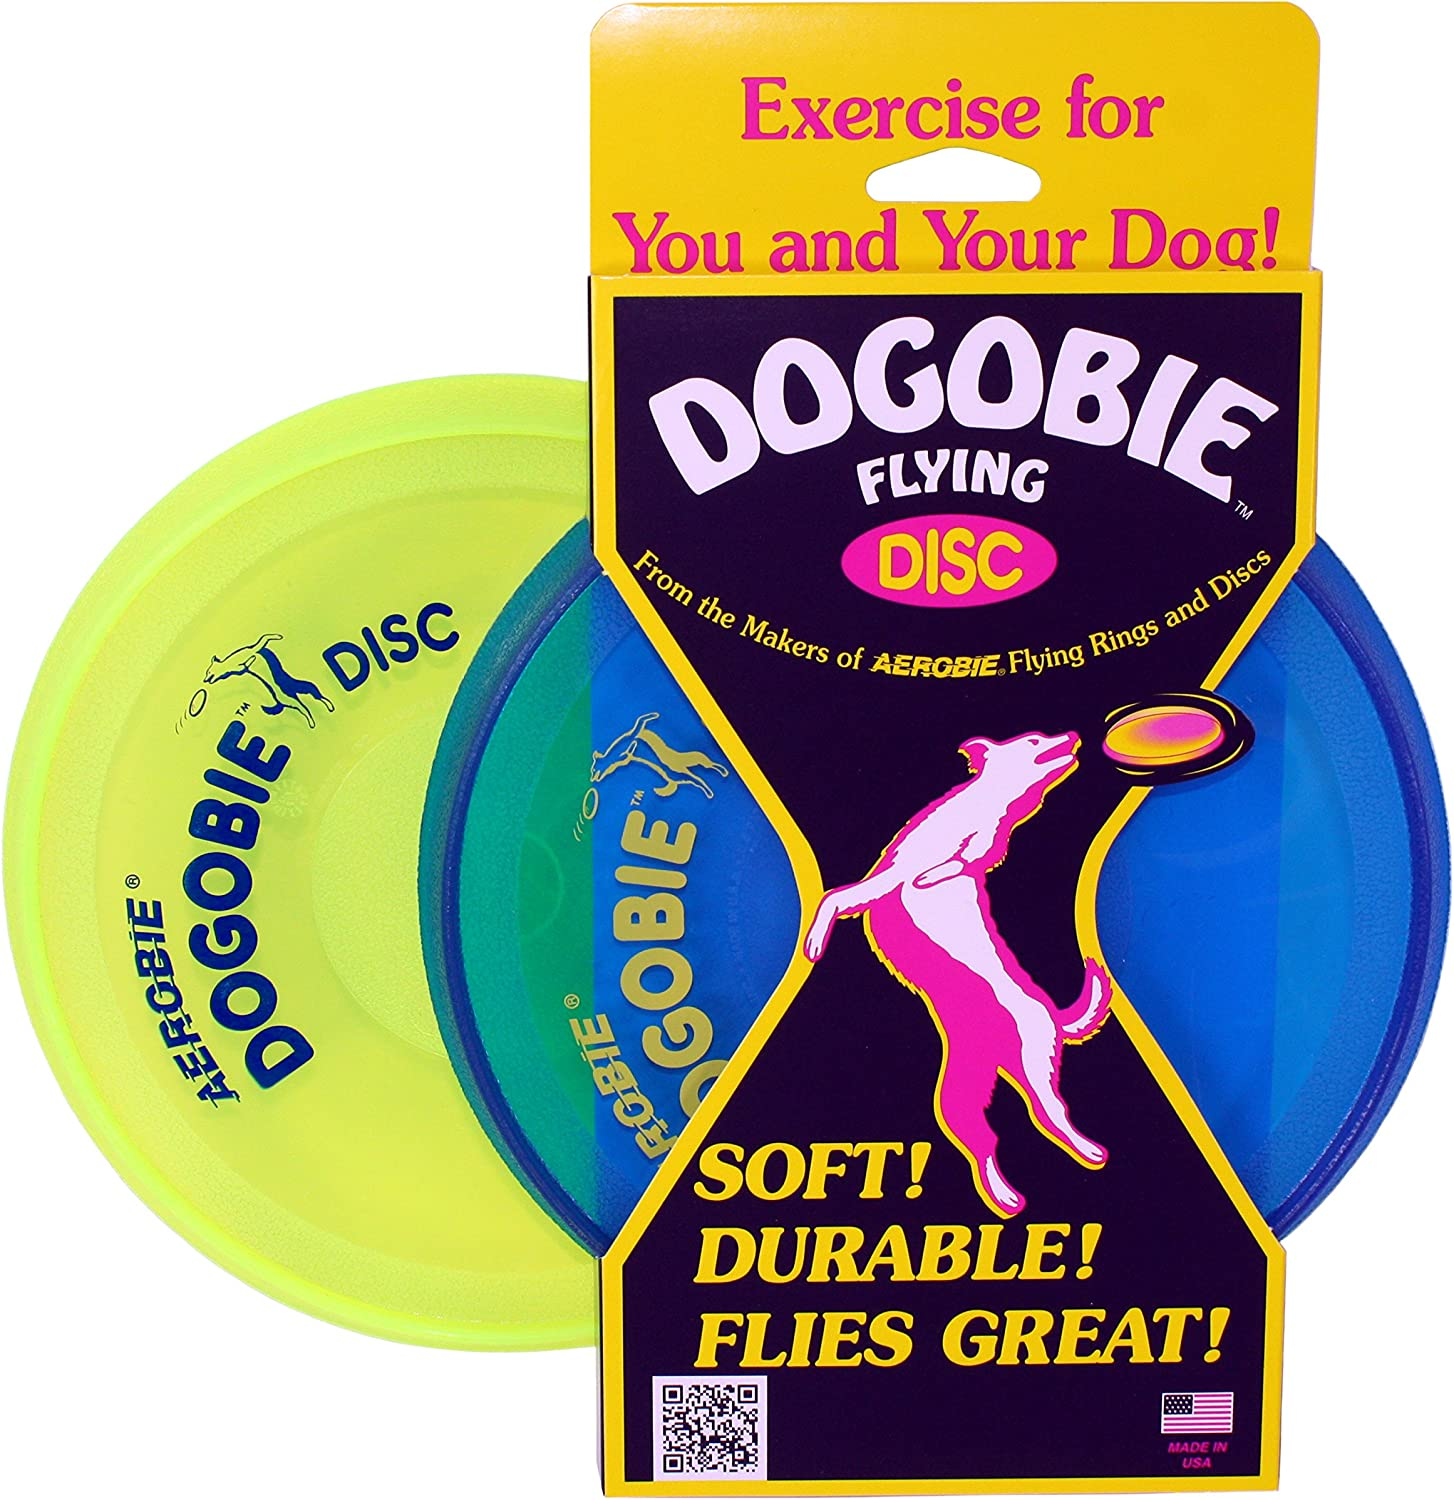 Aerobie Dogobie Discs for Dogs (Pack of 2) (1 bluee Disc, 1 Yellow Disc)